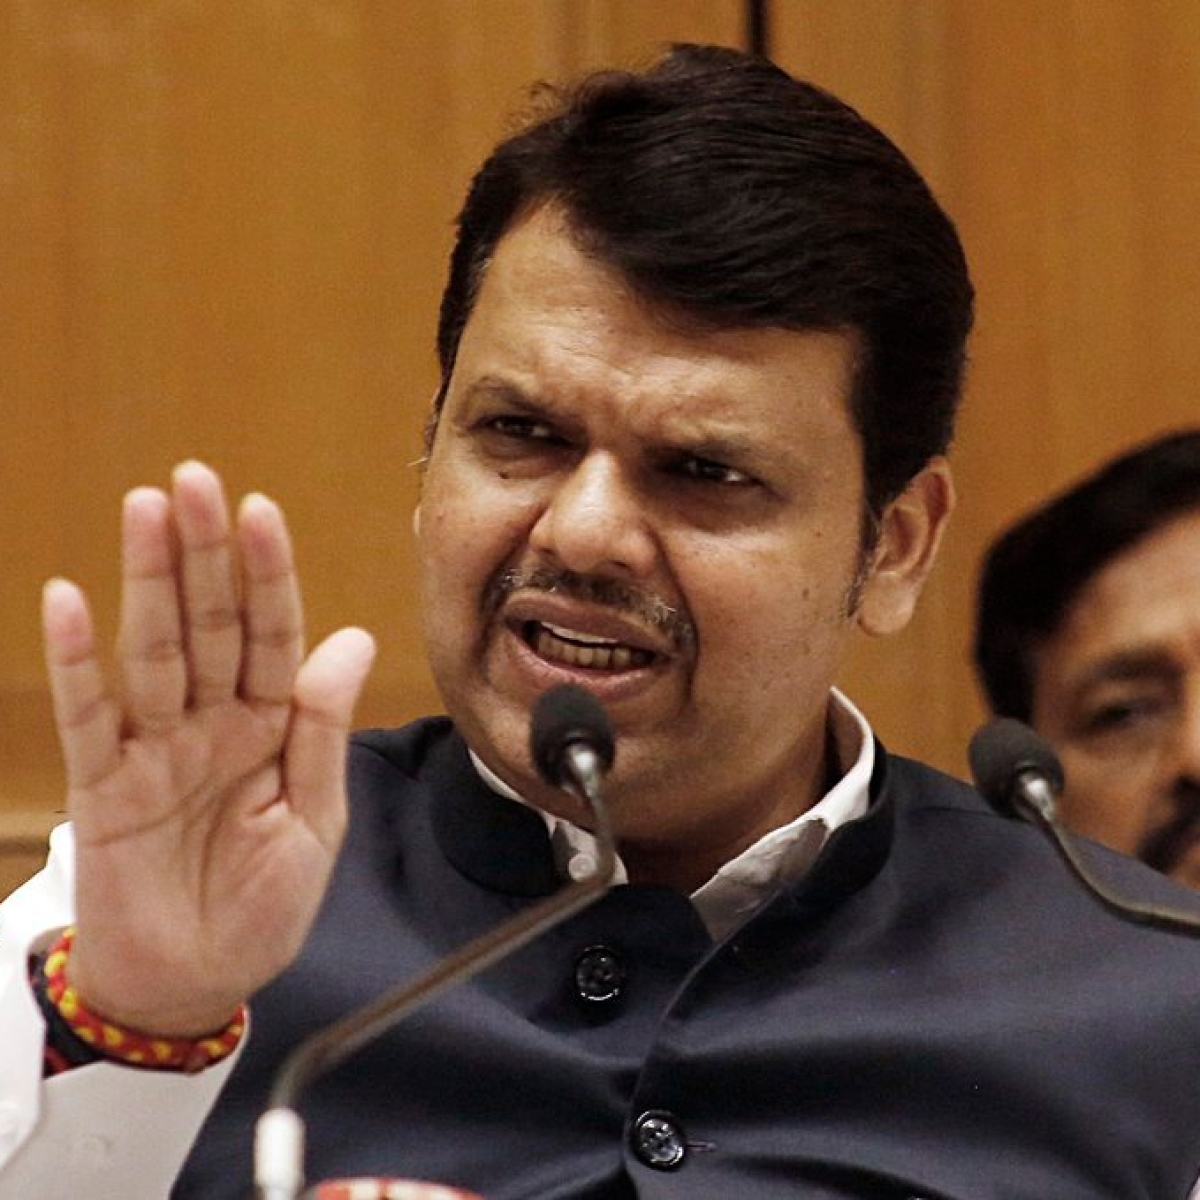 NCP to Devendra Fadnavis: Girl's hand is not given by looking at the boy's father